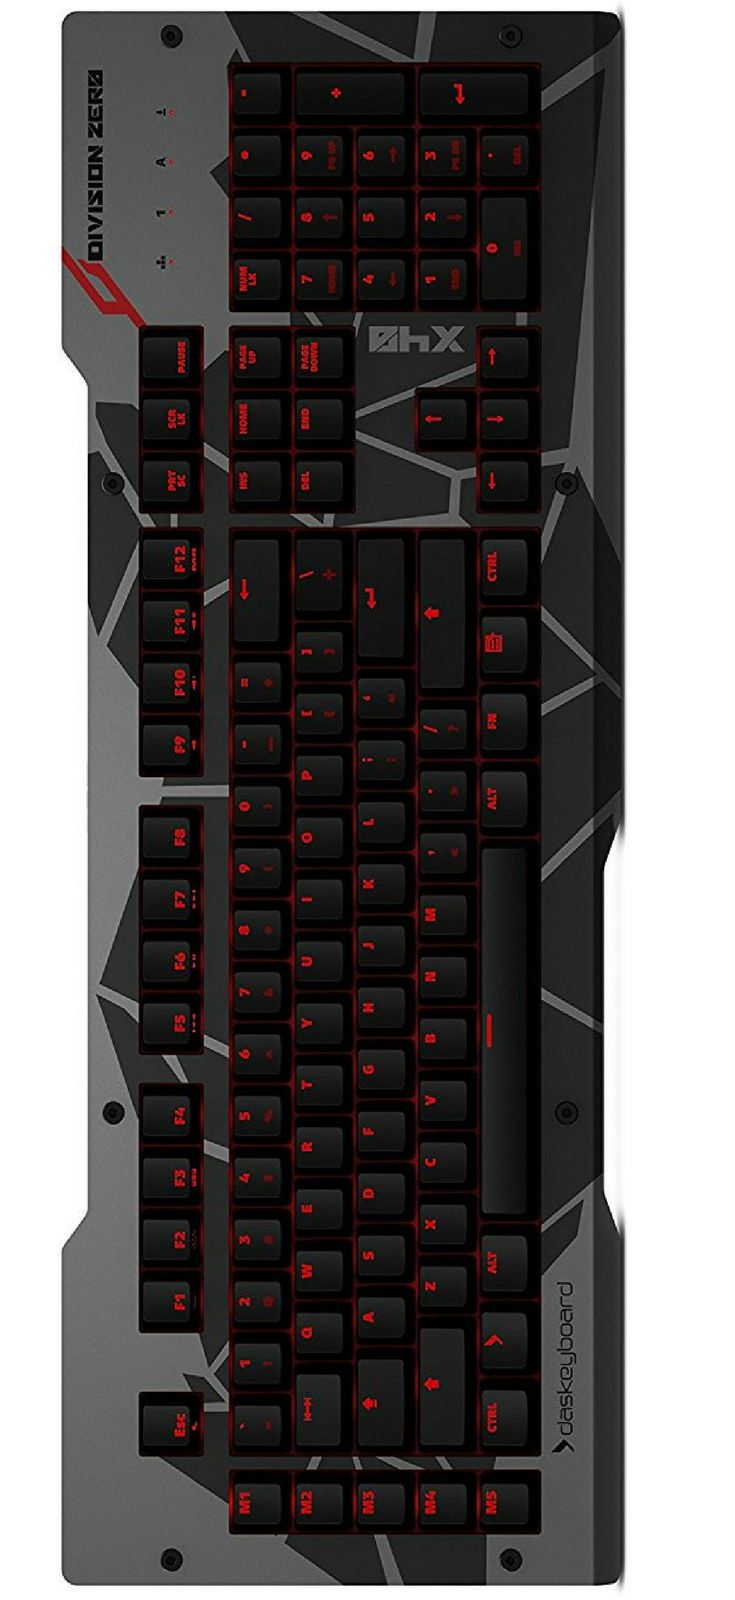 27 best images about keyboards mice other computer accessories on pinterest logitech cable. Black Bedroom Furniture Sets. Home Design Ideas